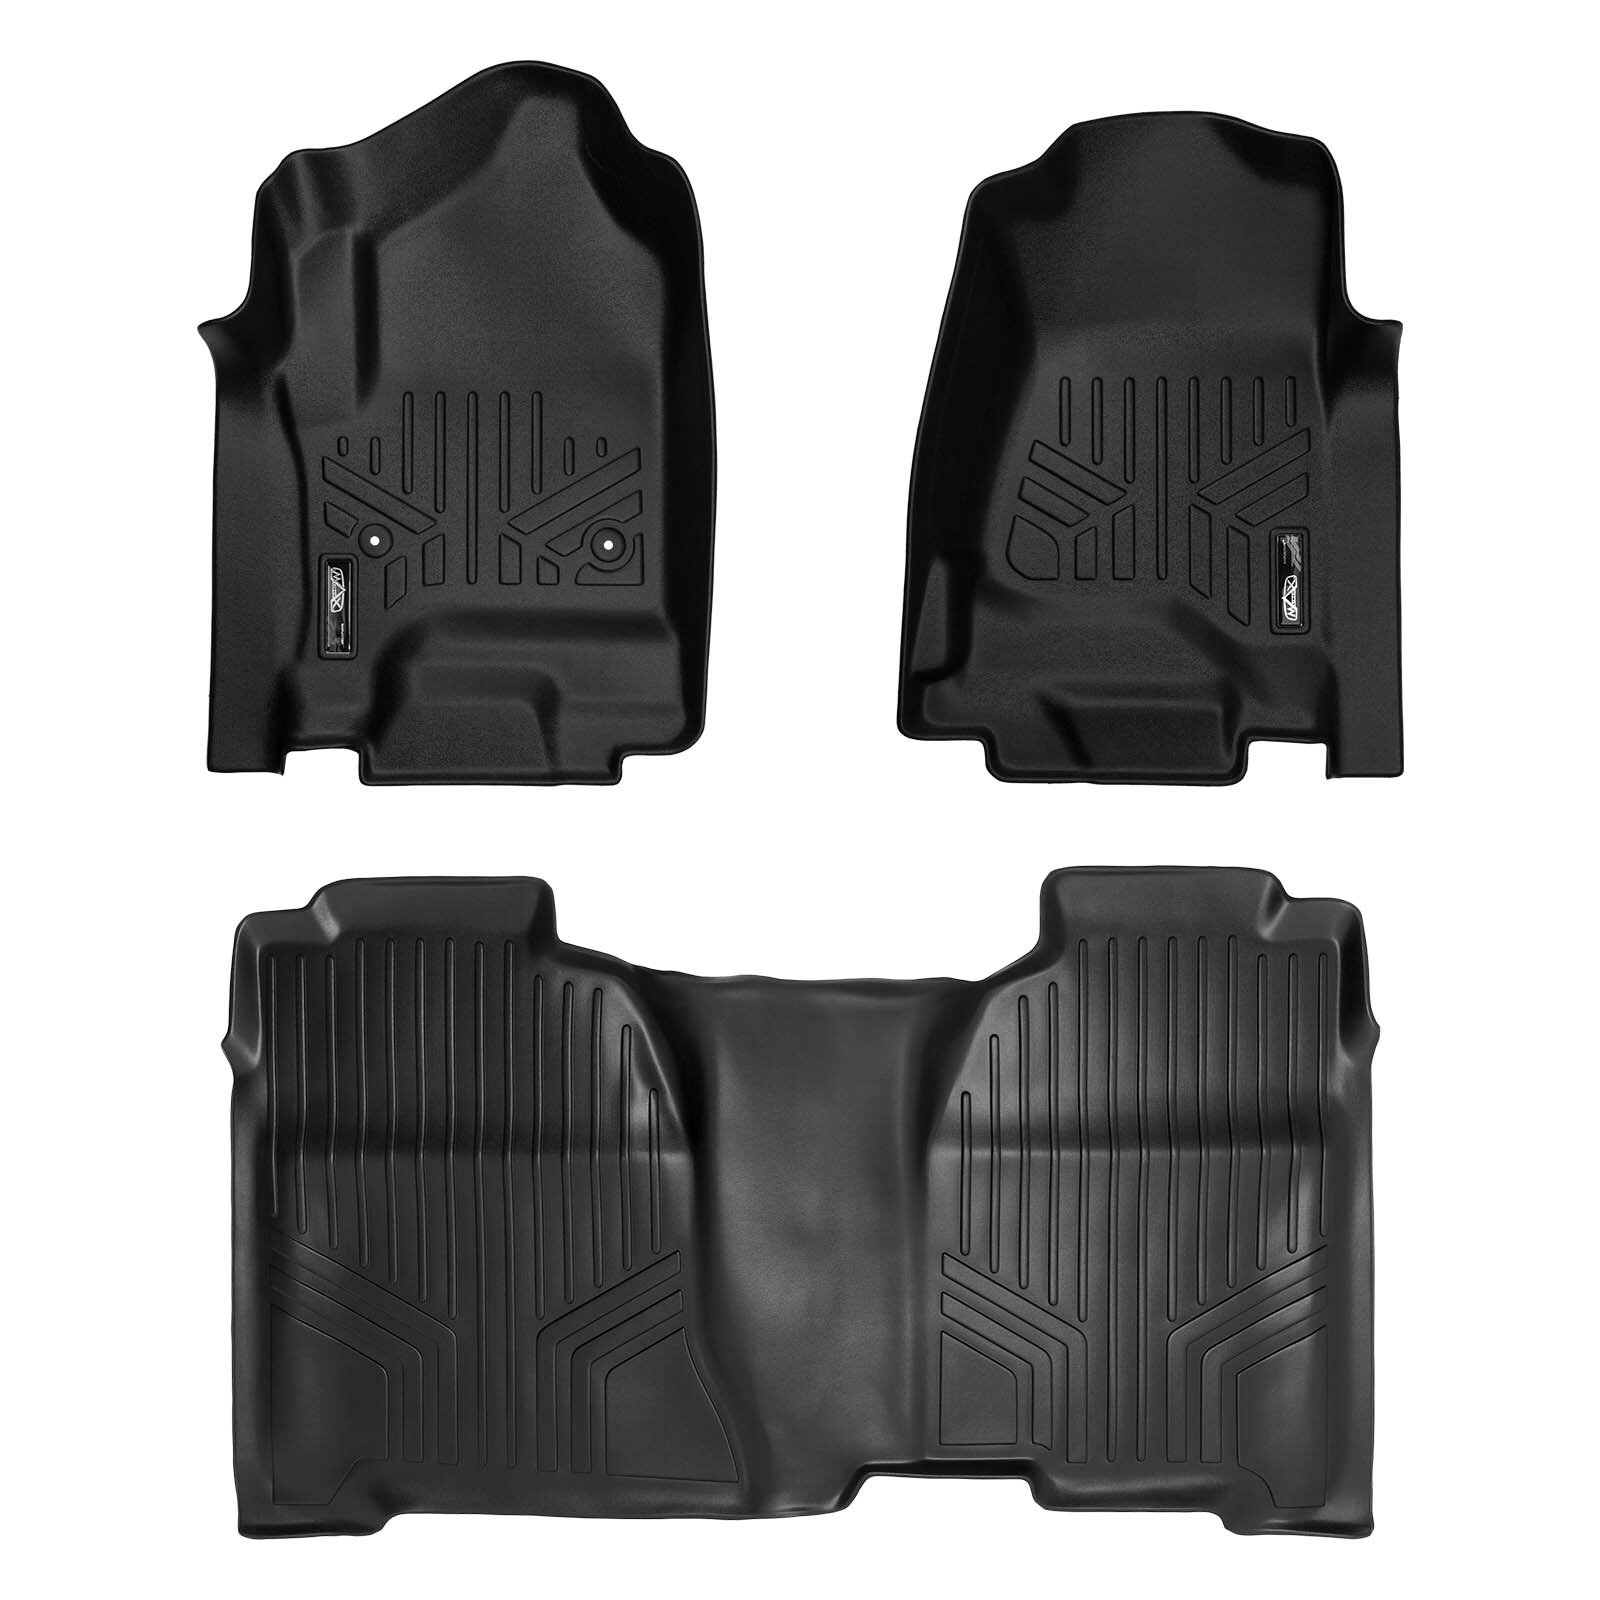 SMARTLINER Floor Mats 2 Row Liner Set Black for Crew Cab 2014-2018 Silverado/Sierra 1500 - 2015-2019 2500/3500 HD